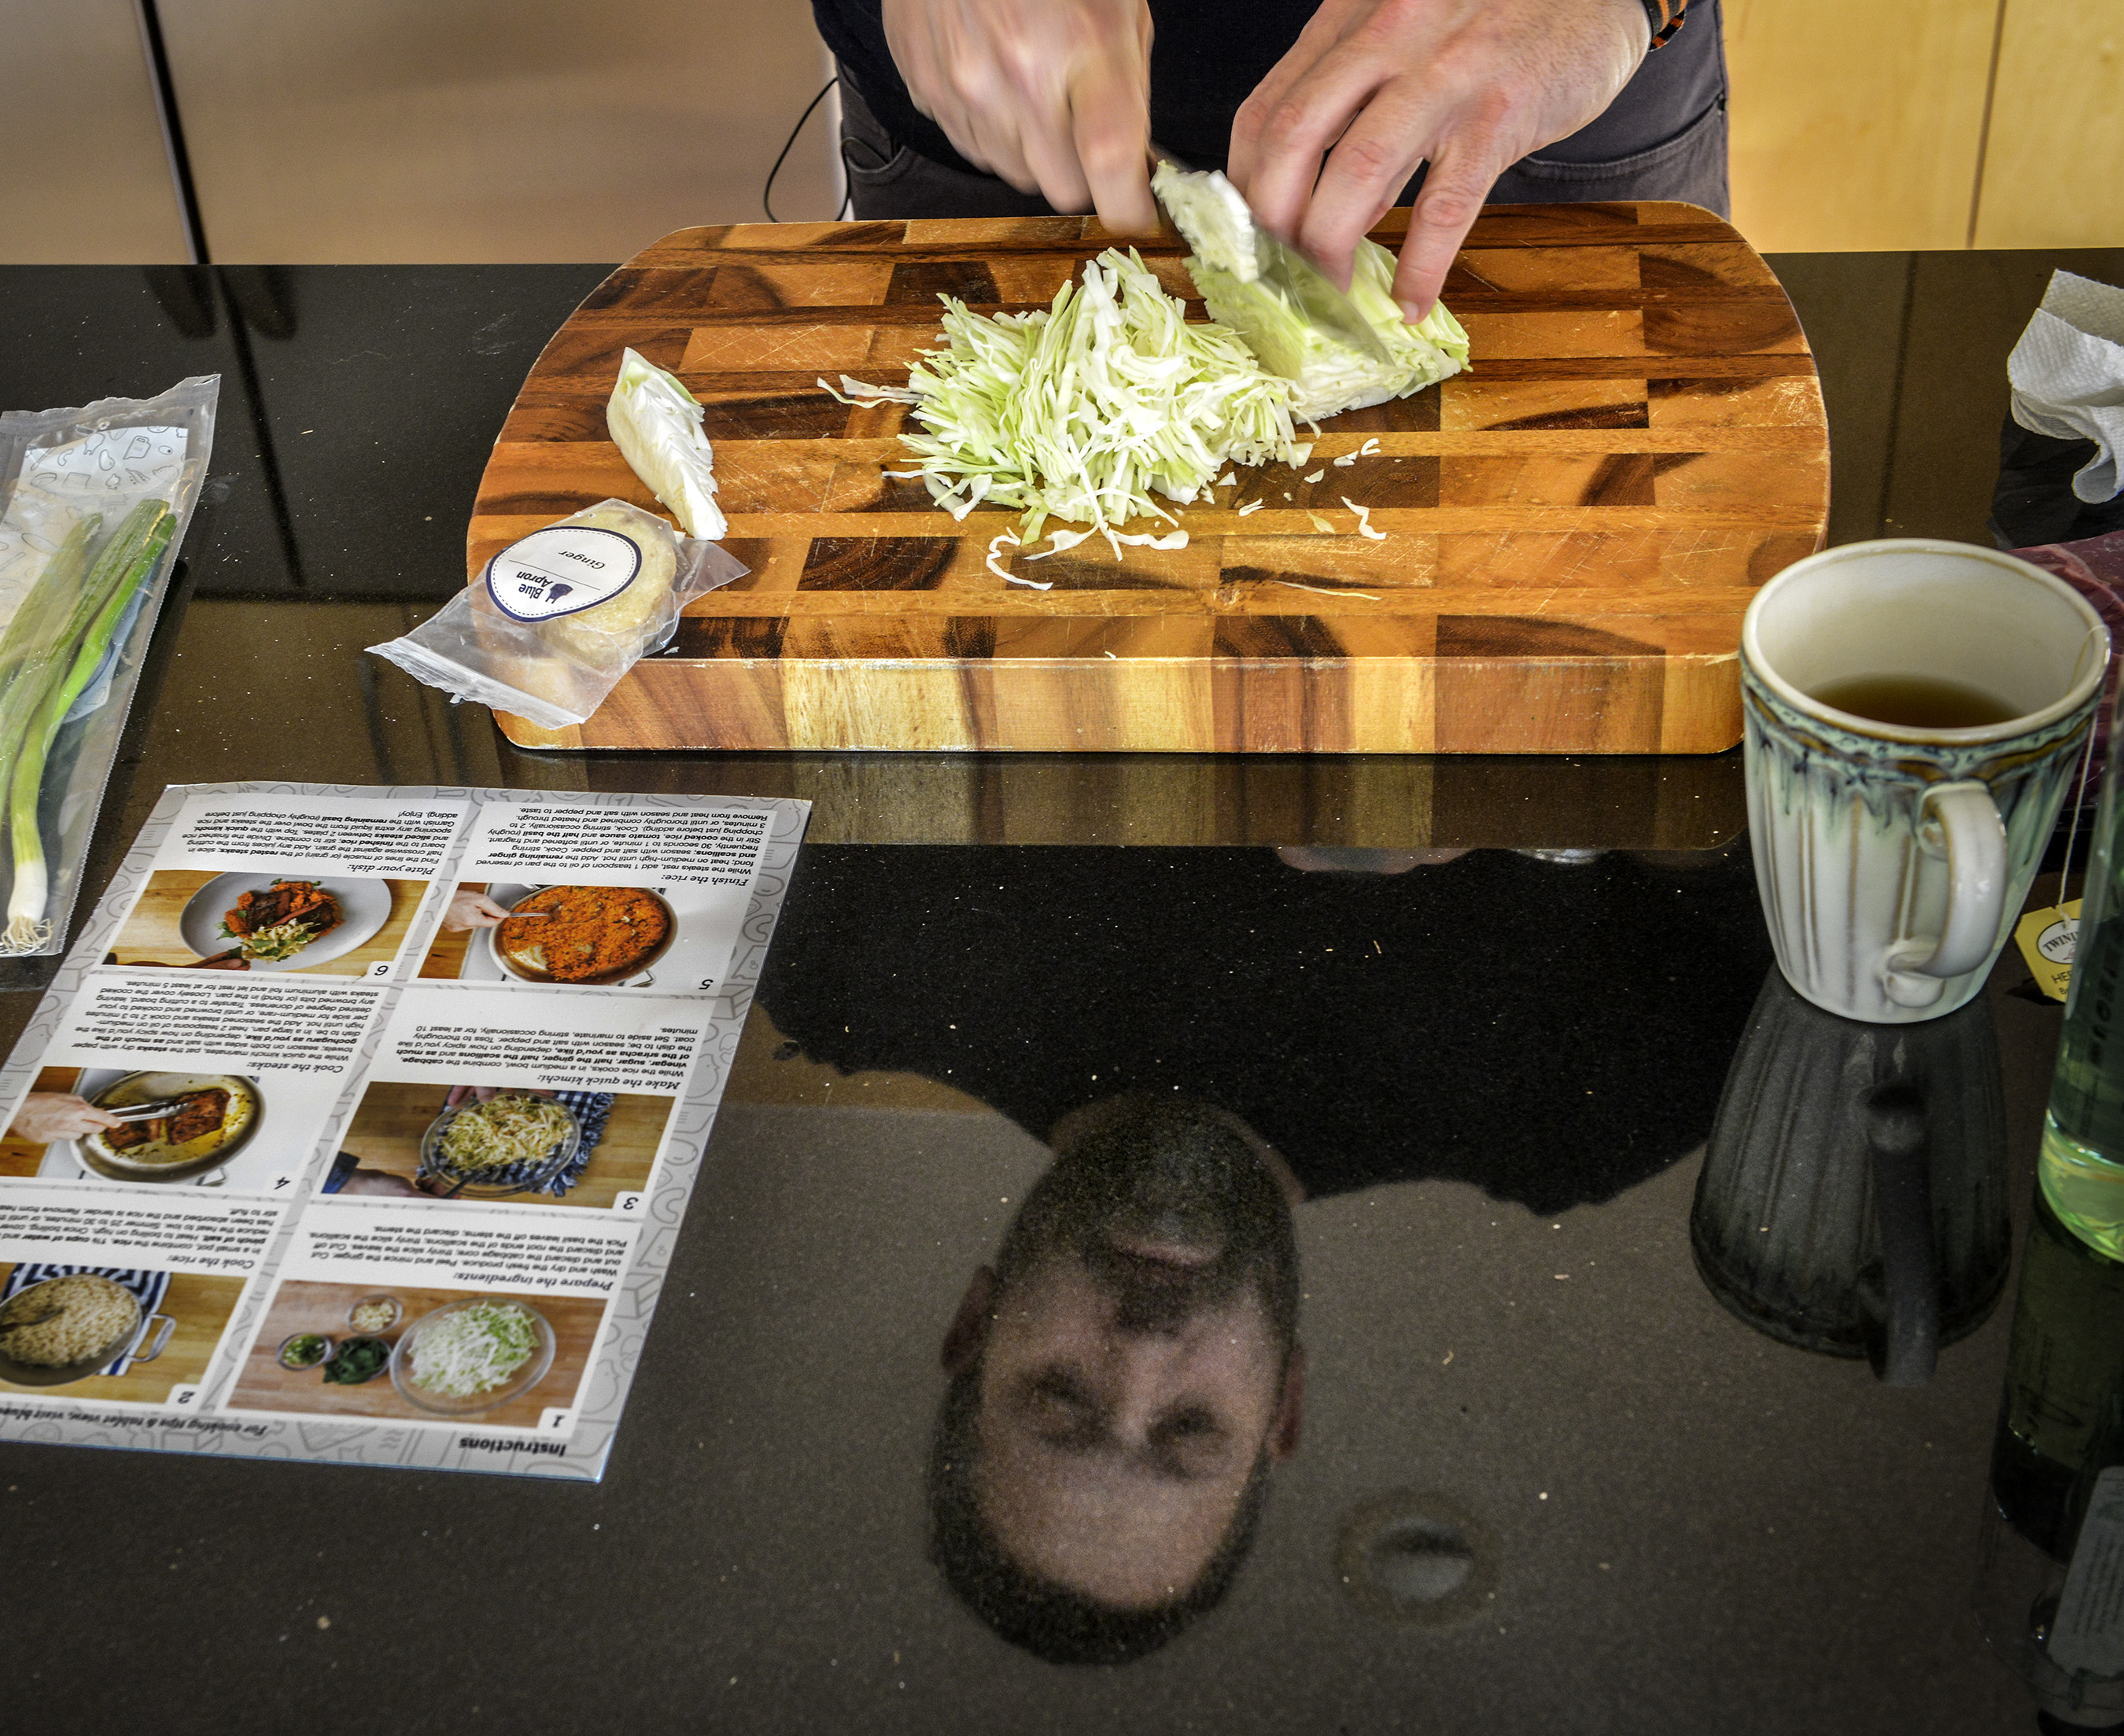 Chef Mike Isabella, reflected in his shiny black work surface, prepares a meal sent to him by Blue Apron, the online meal delivery service, in his home kitchen on December, 04, 2015 in Washington, DC.